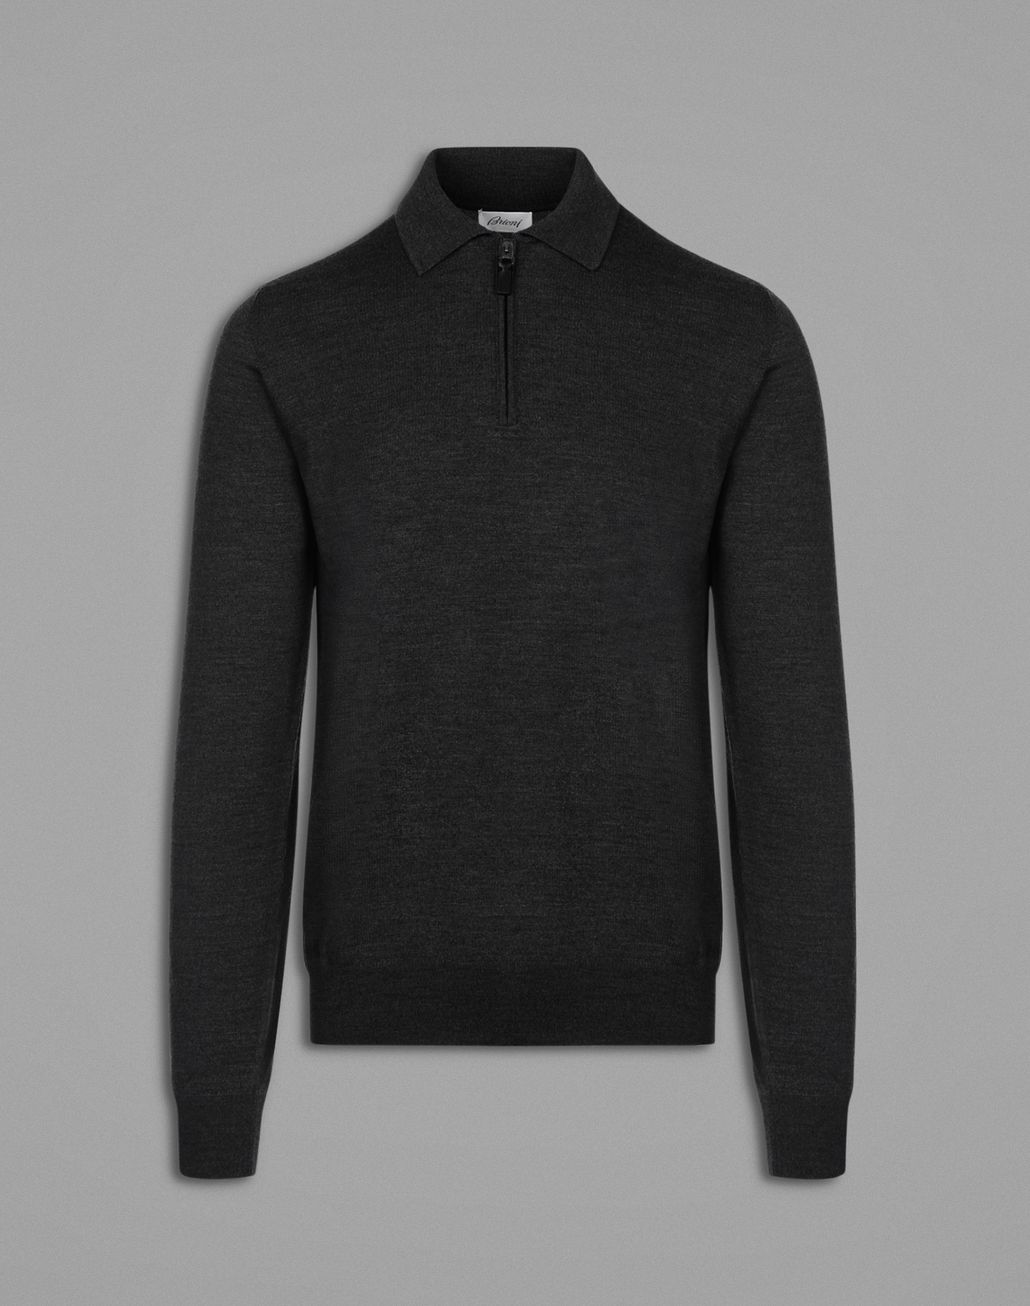 BRIONI Black Long-Sleeved Polo Shirt Knitwear Man f